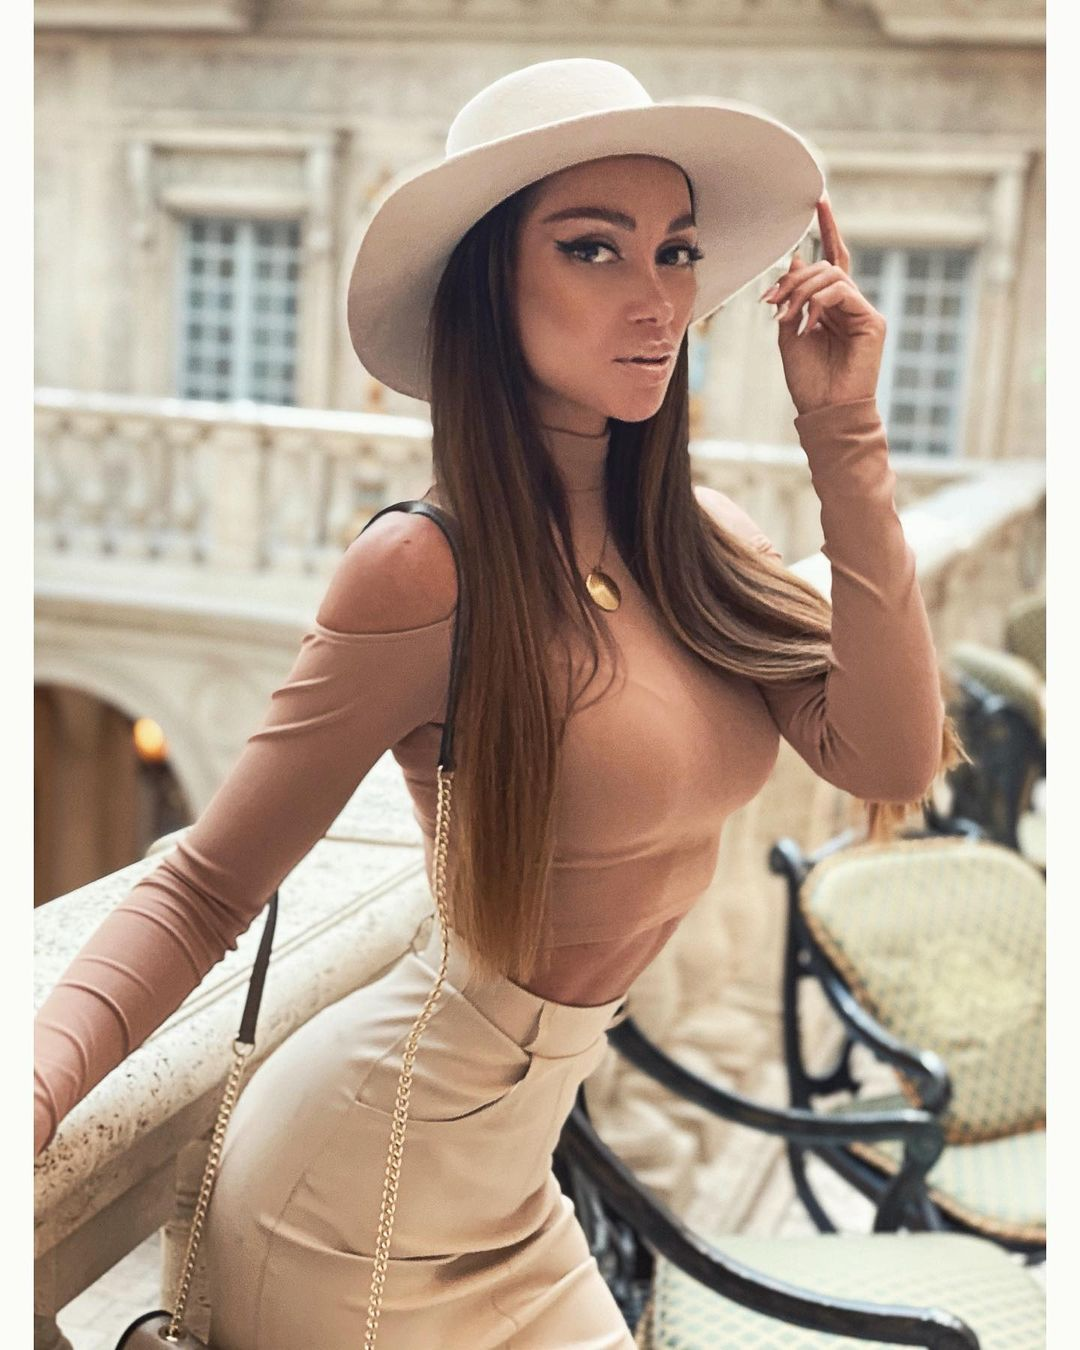 Julia with elegant long haircut and hat